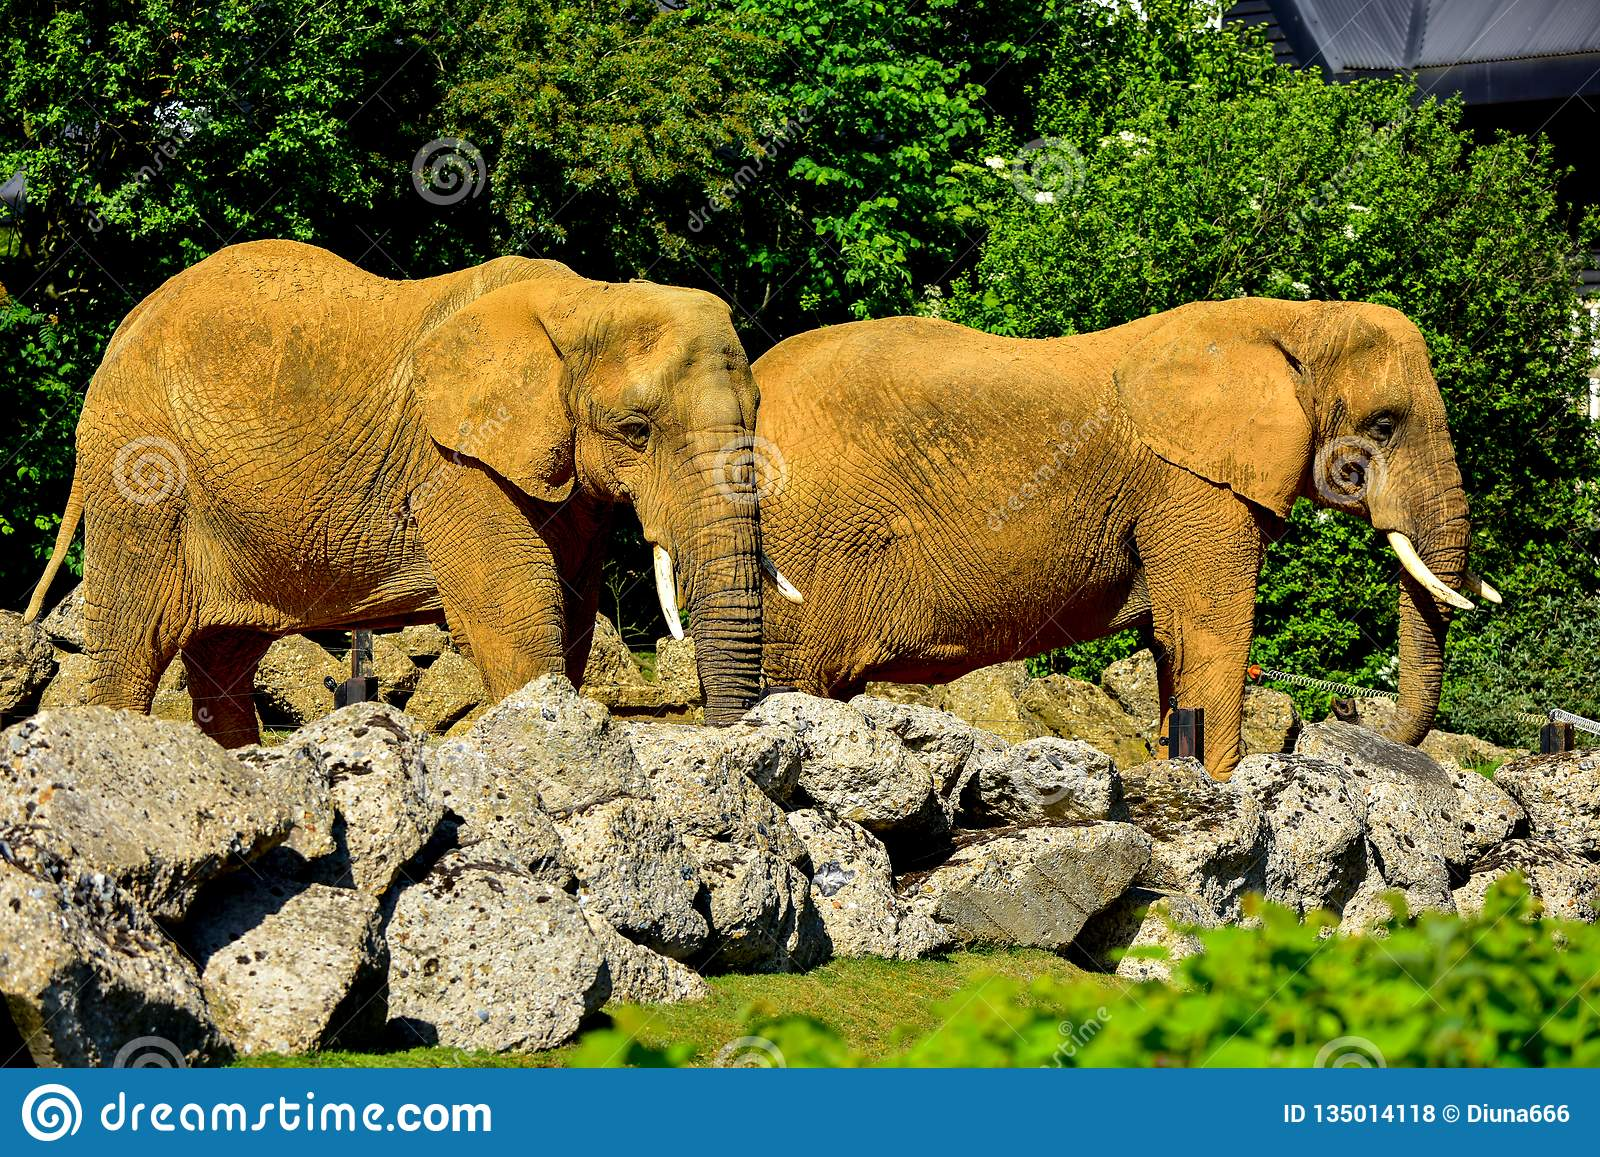 Elephants Before Feeding In A Zoo Stock Photo - Image of